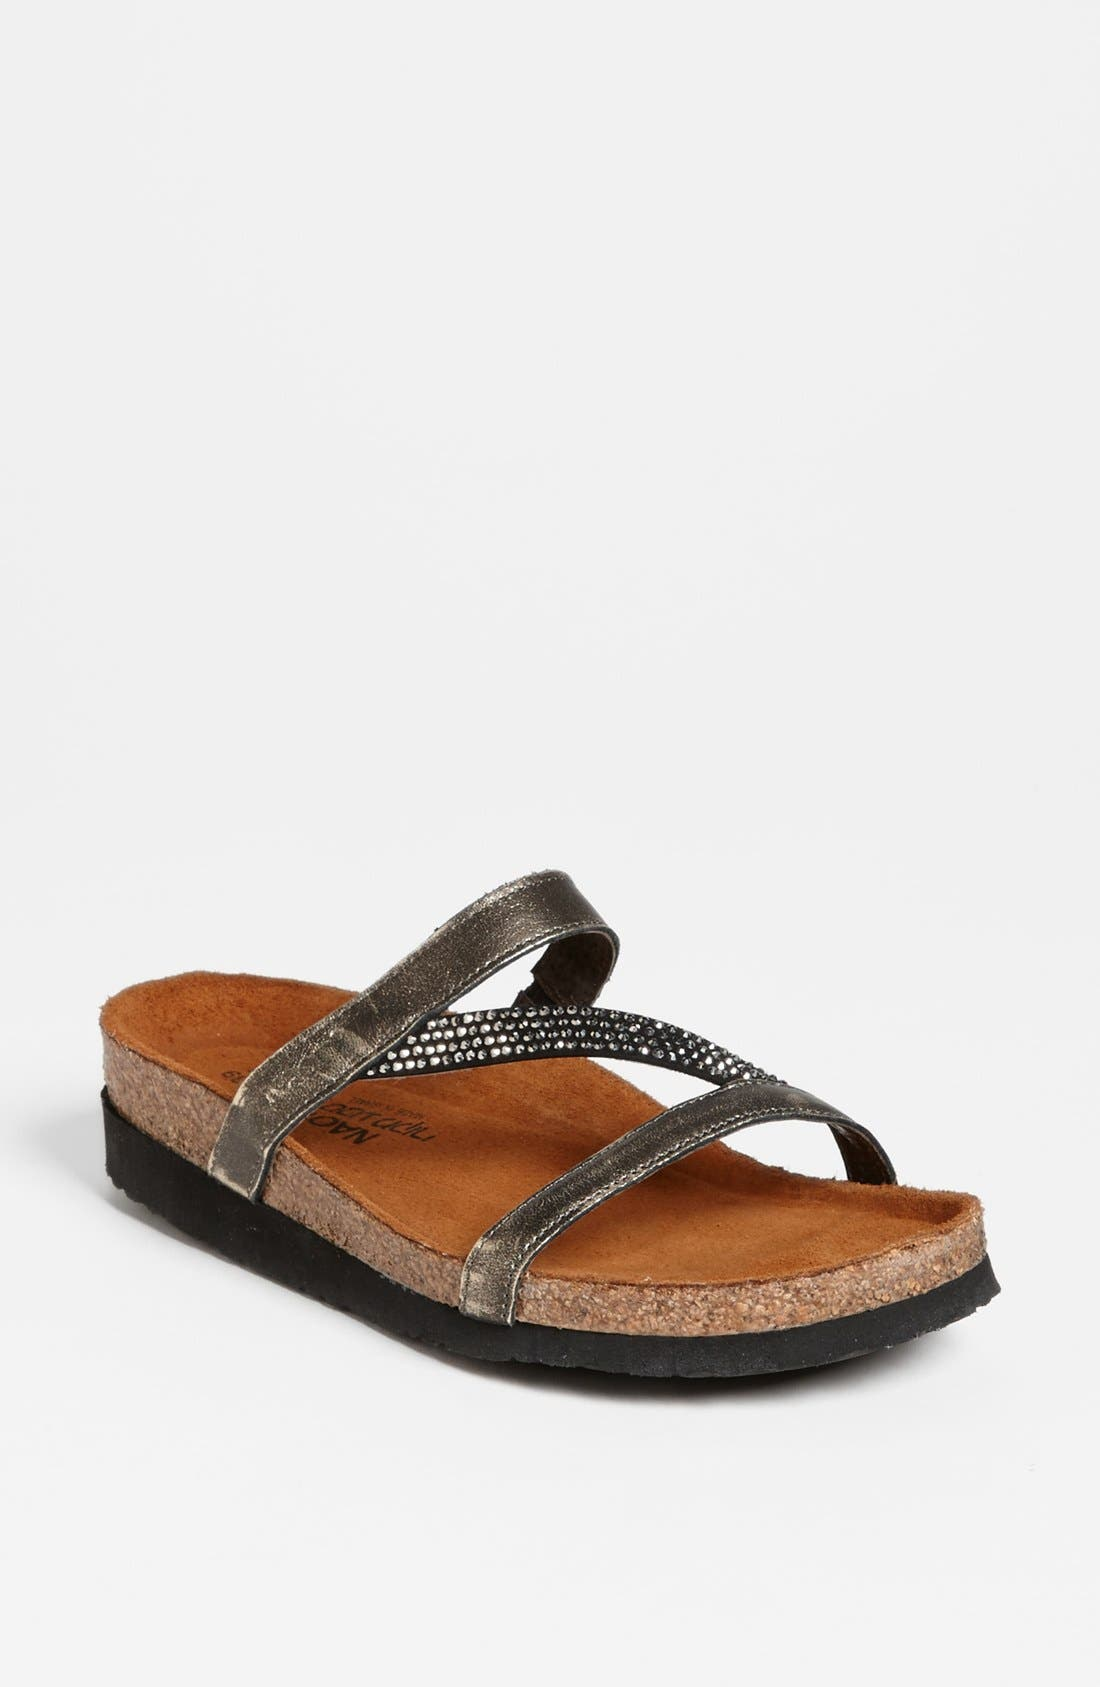 Alternate Image 1 Selected - Naot 'Hawaii' Sandal